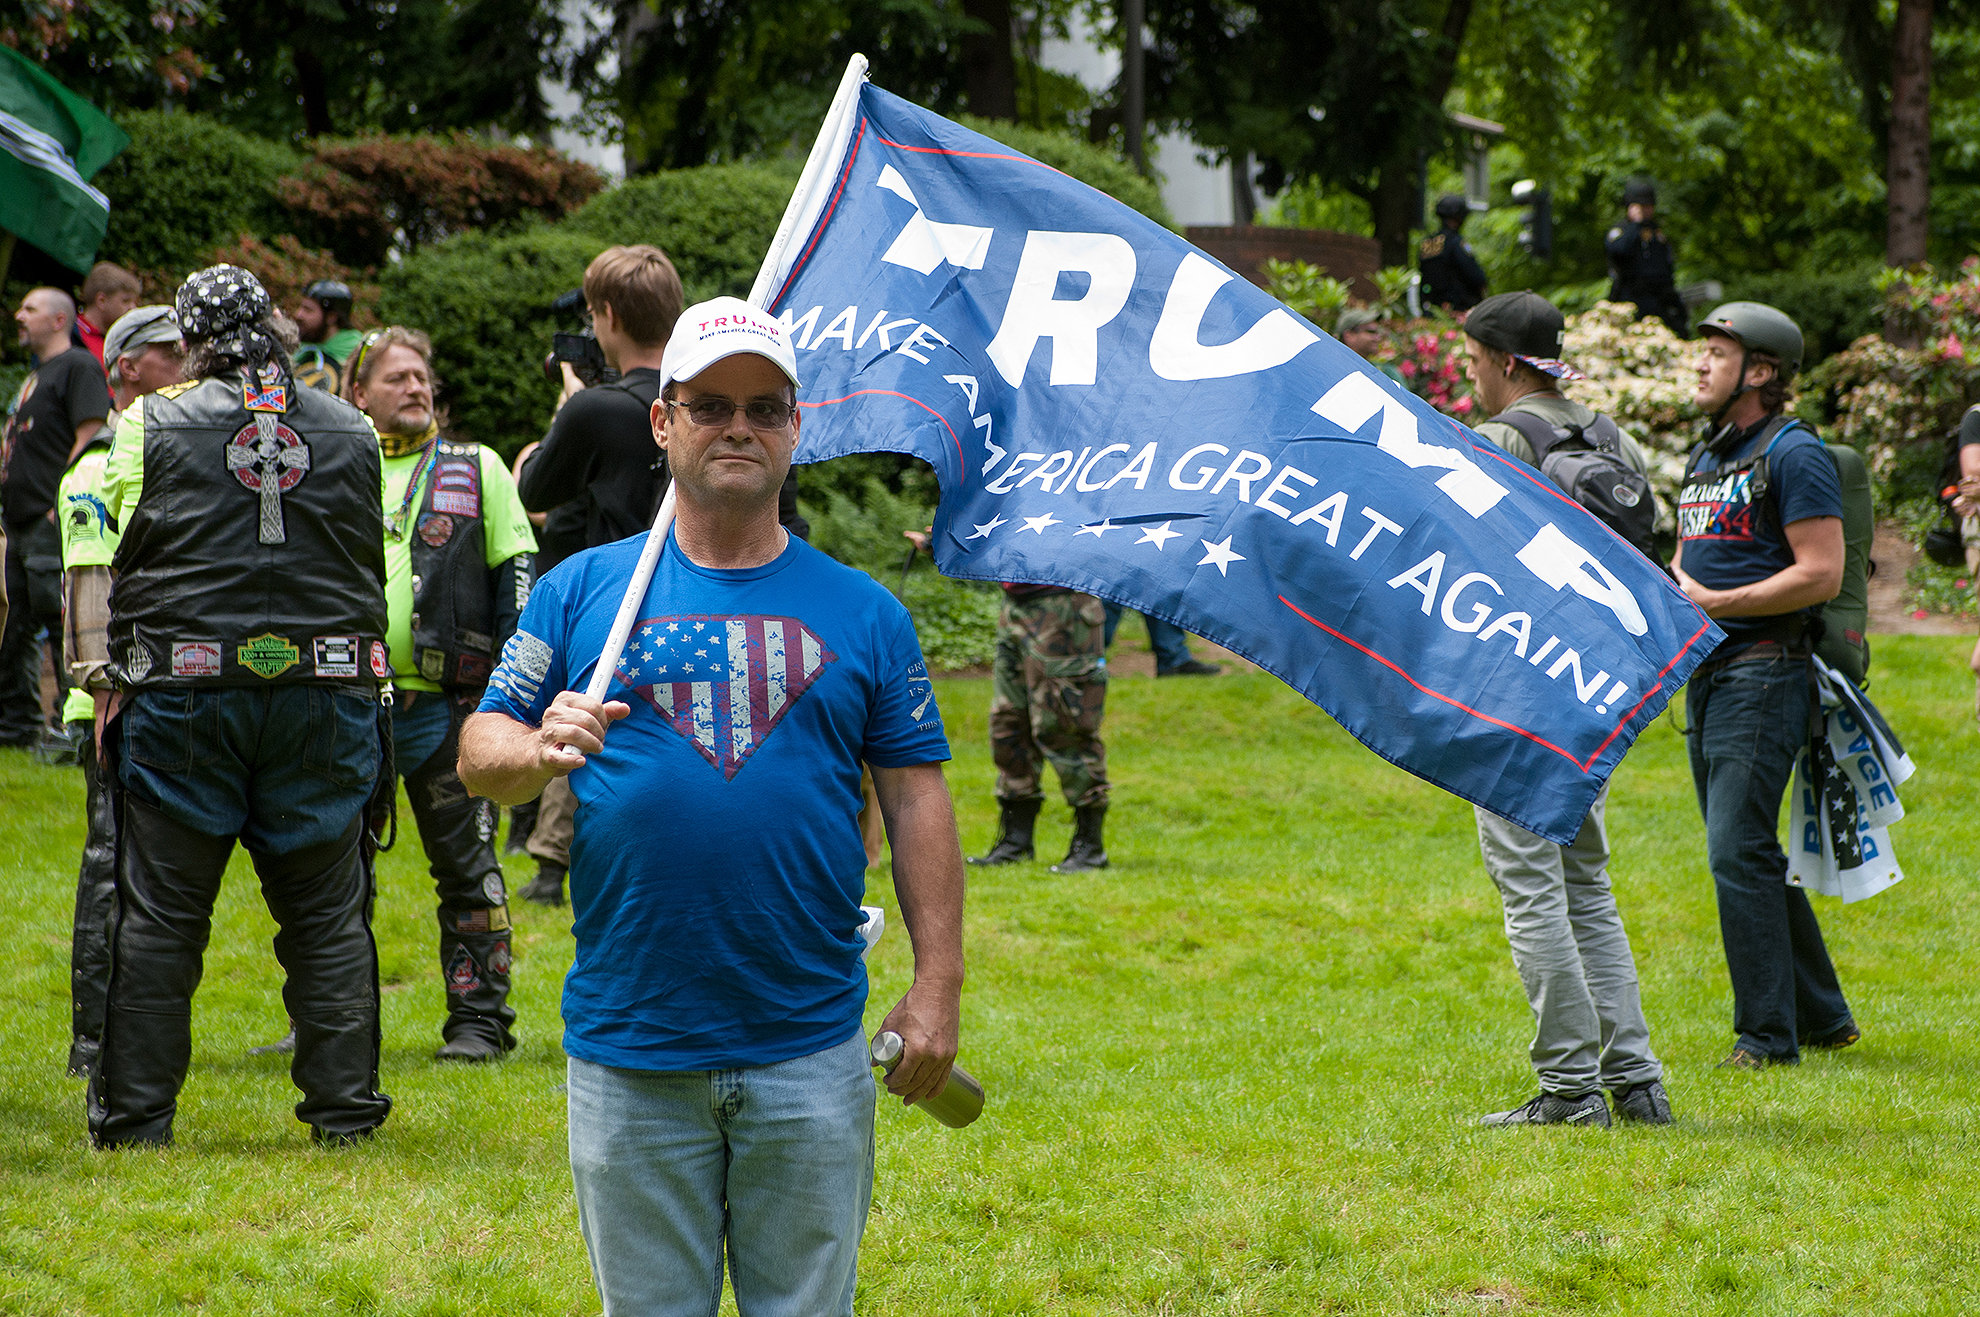 Alt-right Rally in Portland